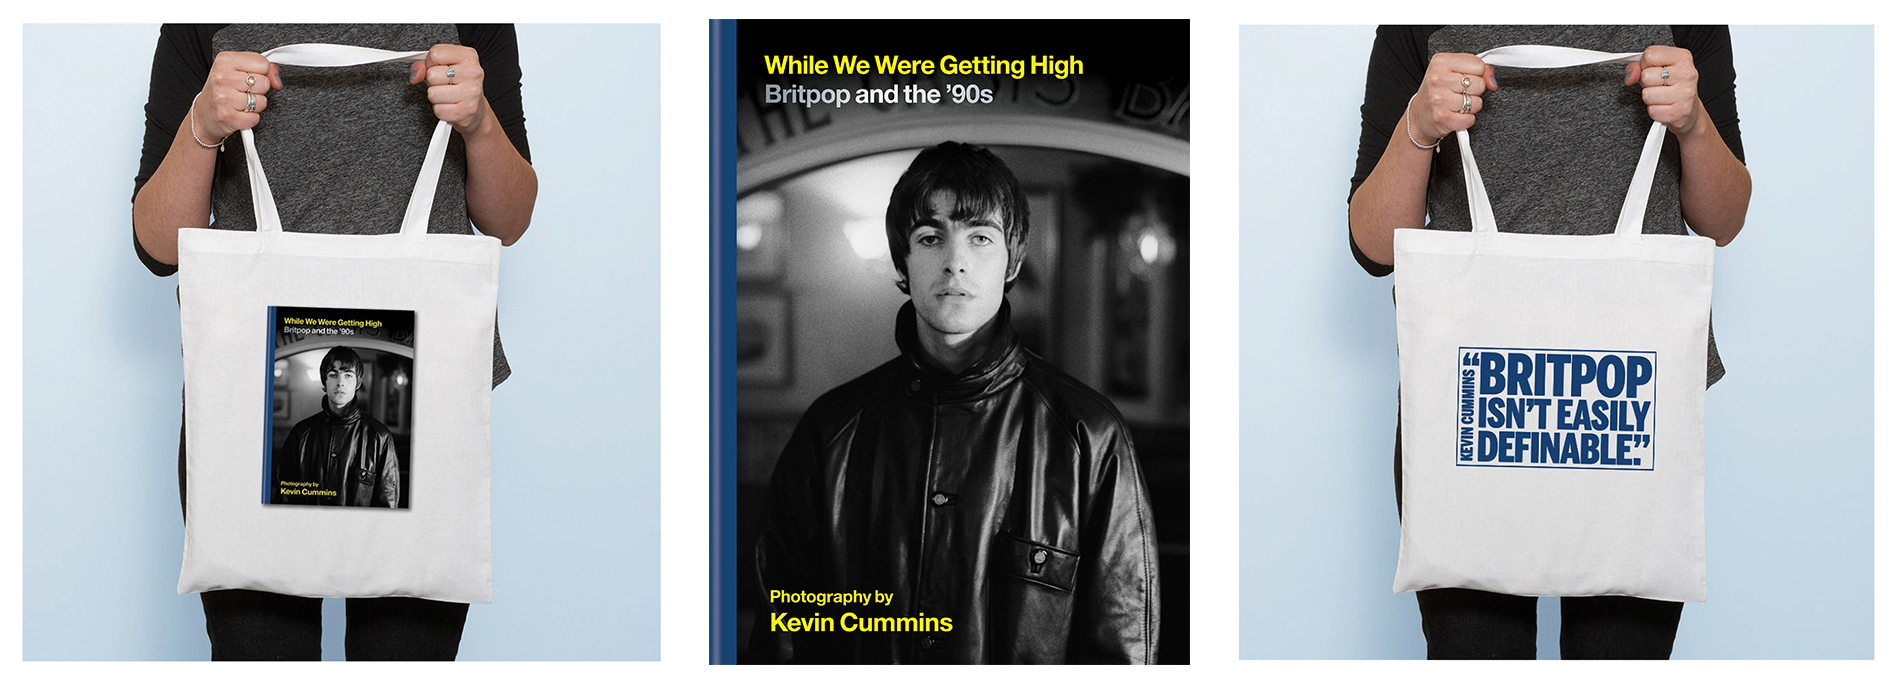 """While We Were Getting High: Britpop and the '90s in photographs with unseen images"" by Kevin Cummins"